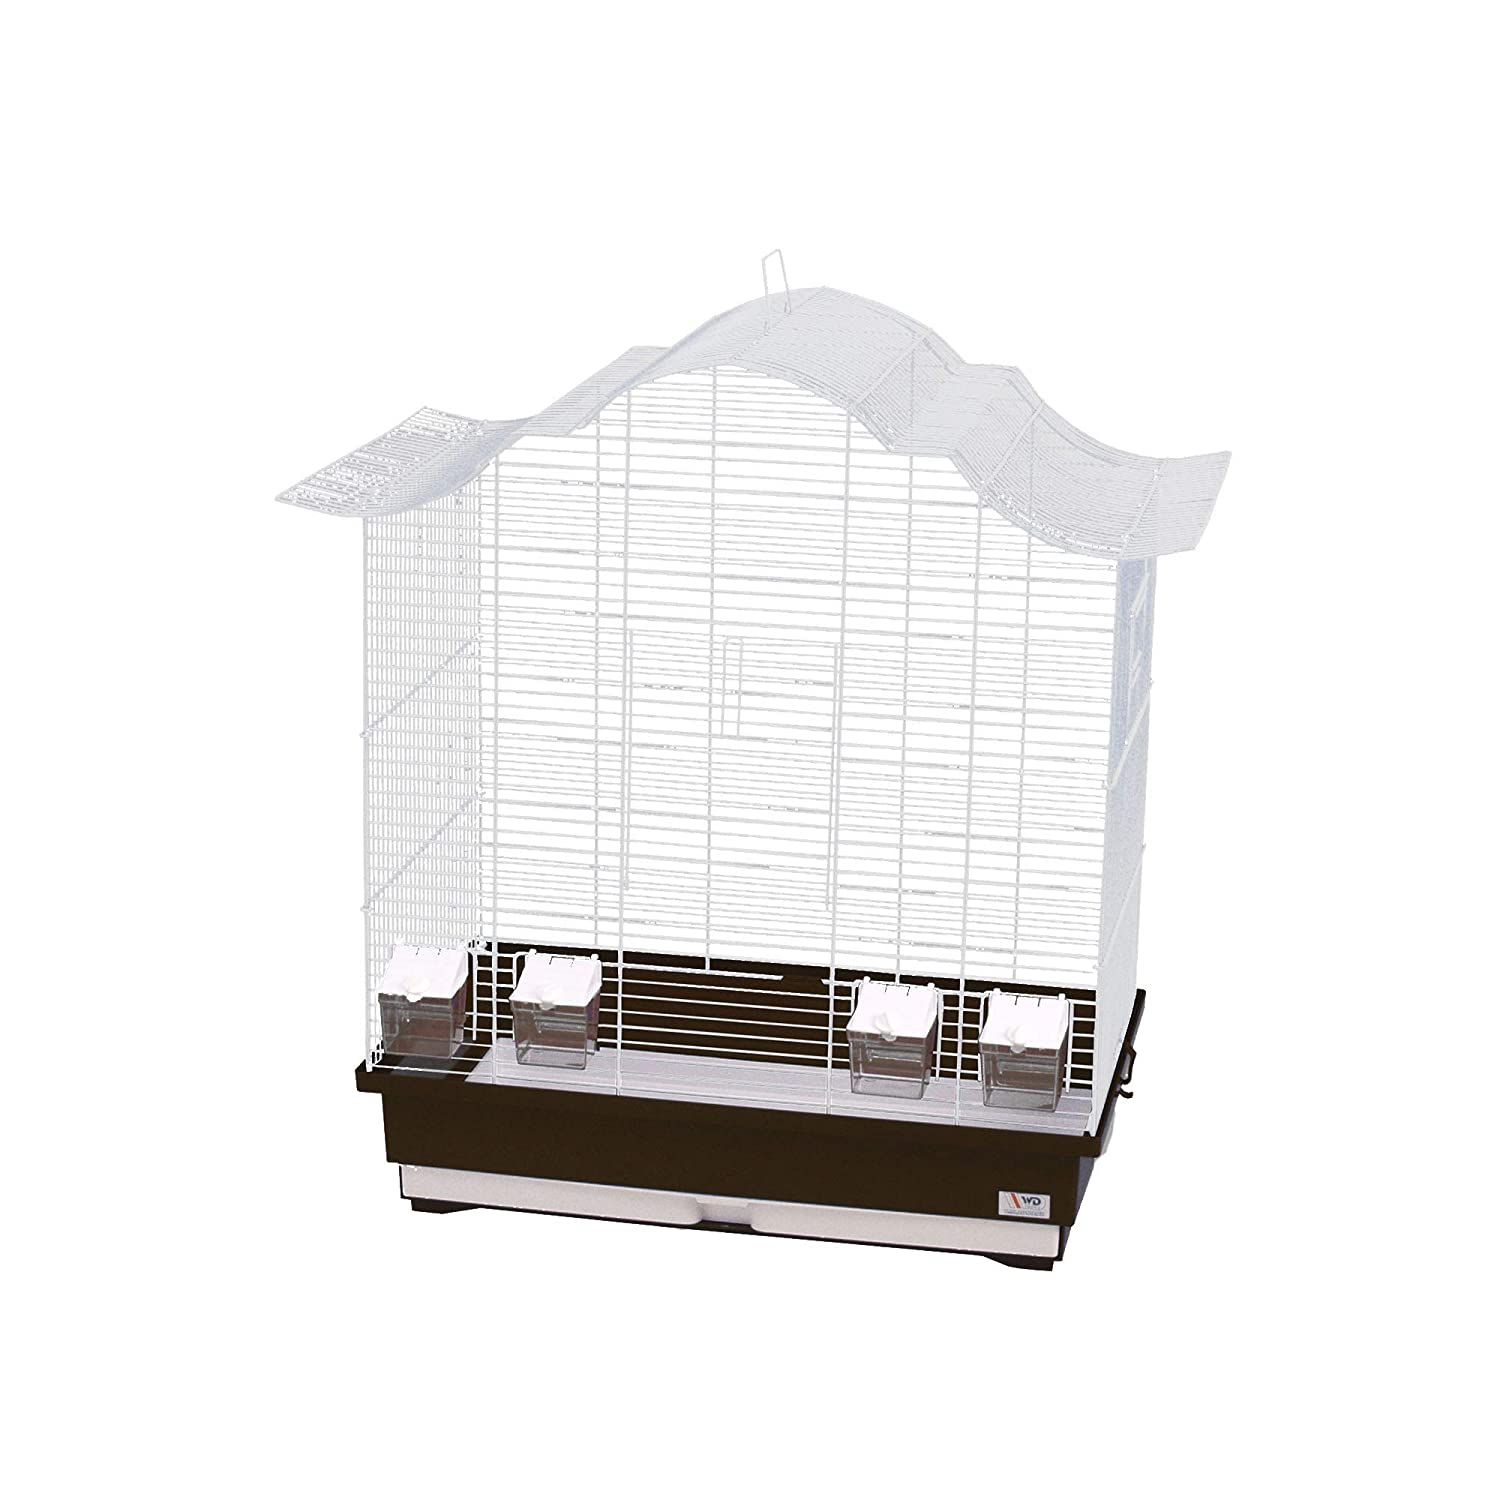 Decorwelt Asia 60 Bird Cages XXL Brown Outer Dimensions 70 x 42 x 72.5 cm Holiday Travel Cage Accessories Budgie Canary Cage Food Bowl Plastic Bird Model